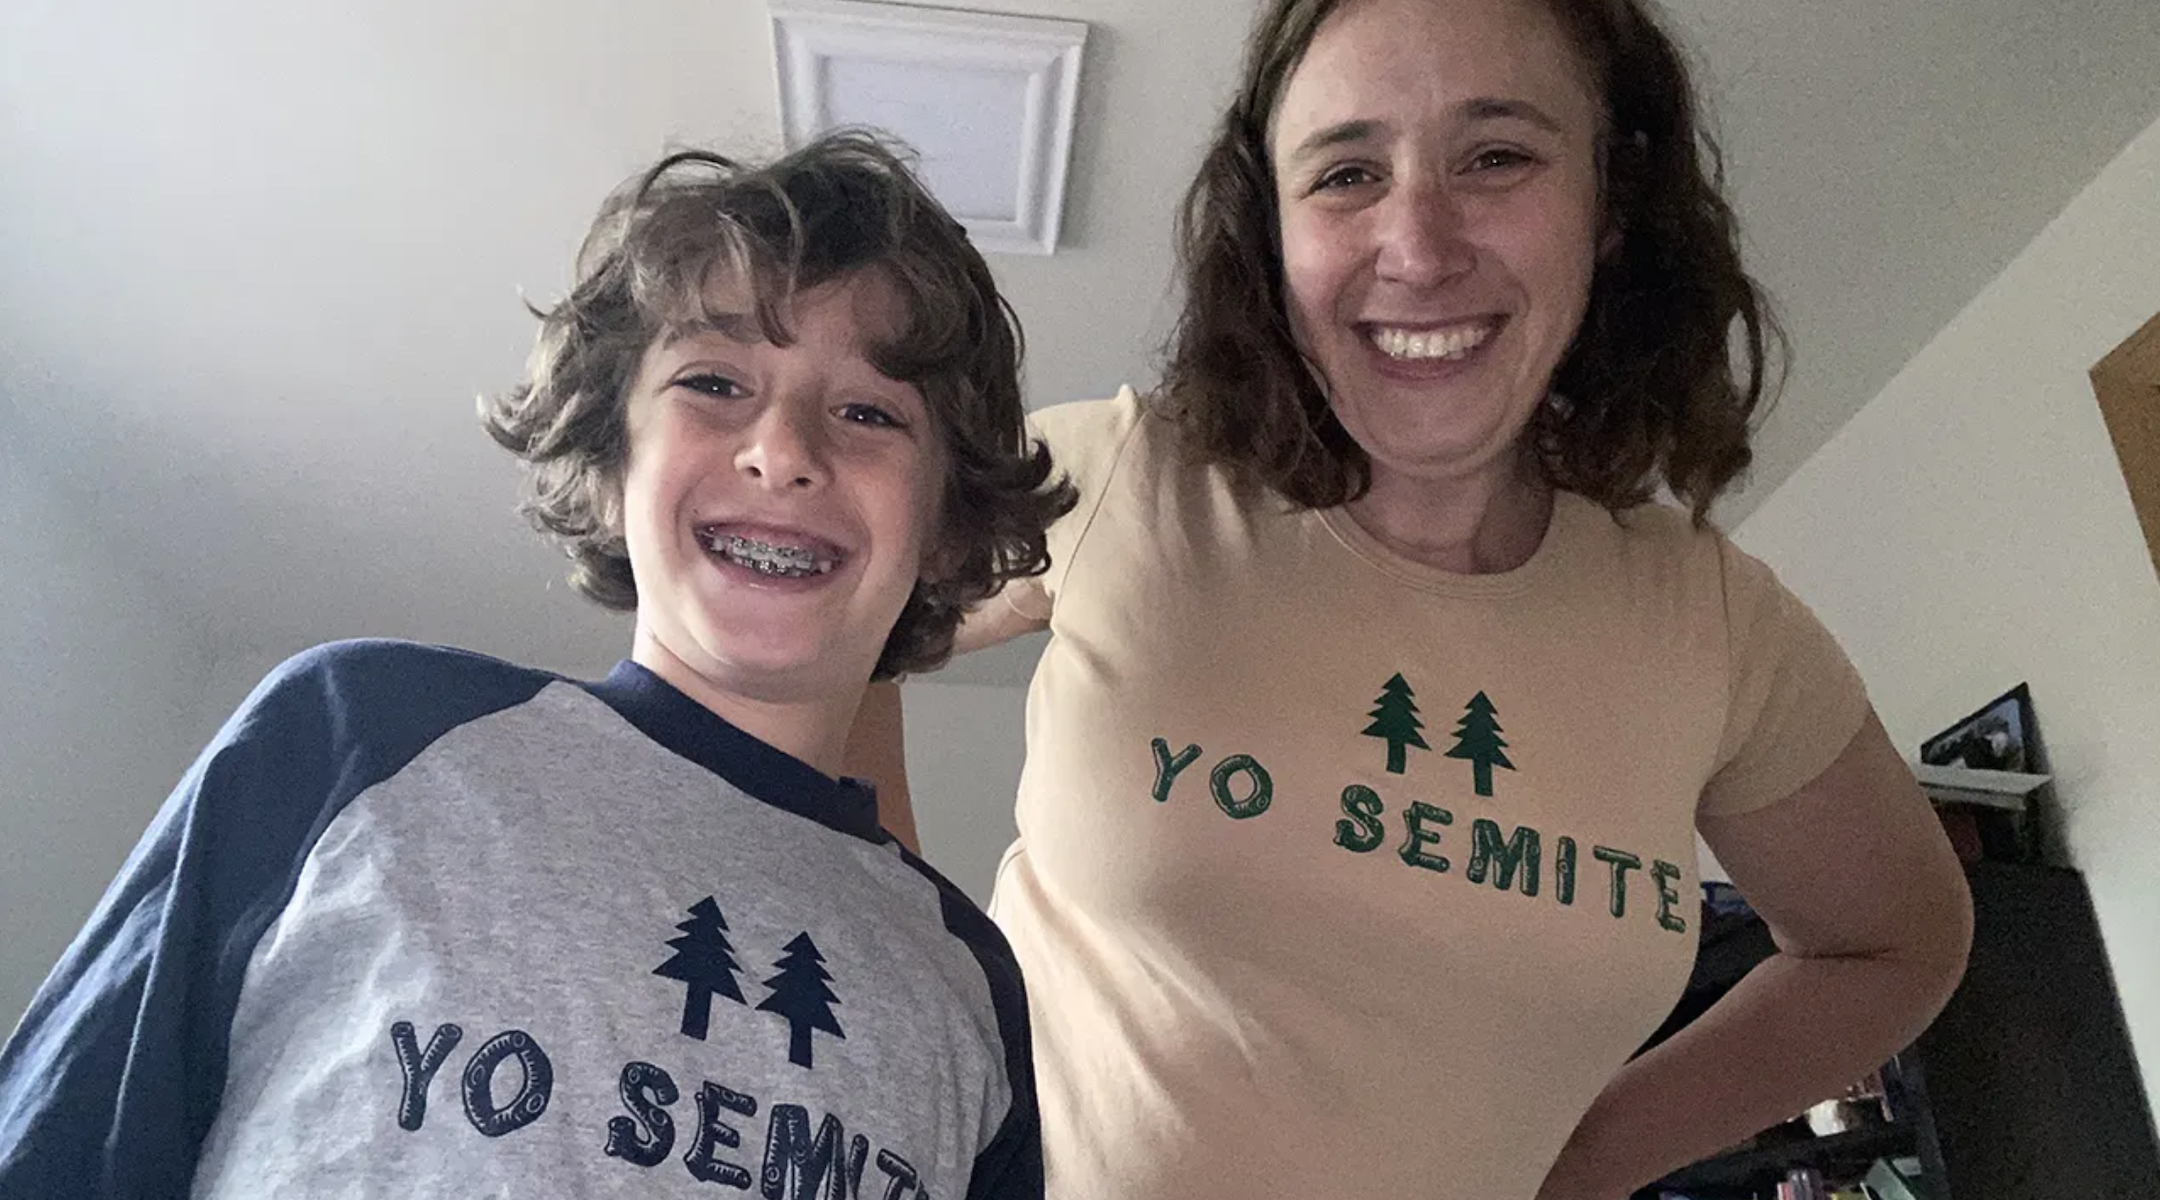 Jewish educator's 'Yo Semite' T-shirt back in spotlight following Trump gaffe